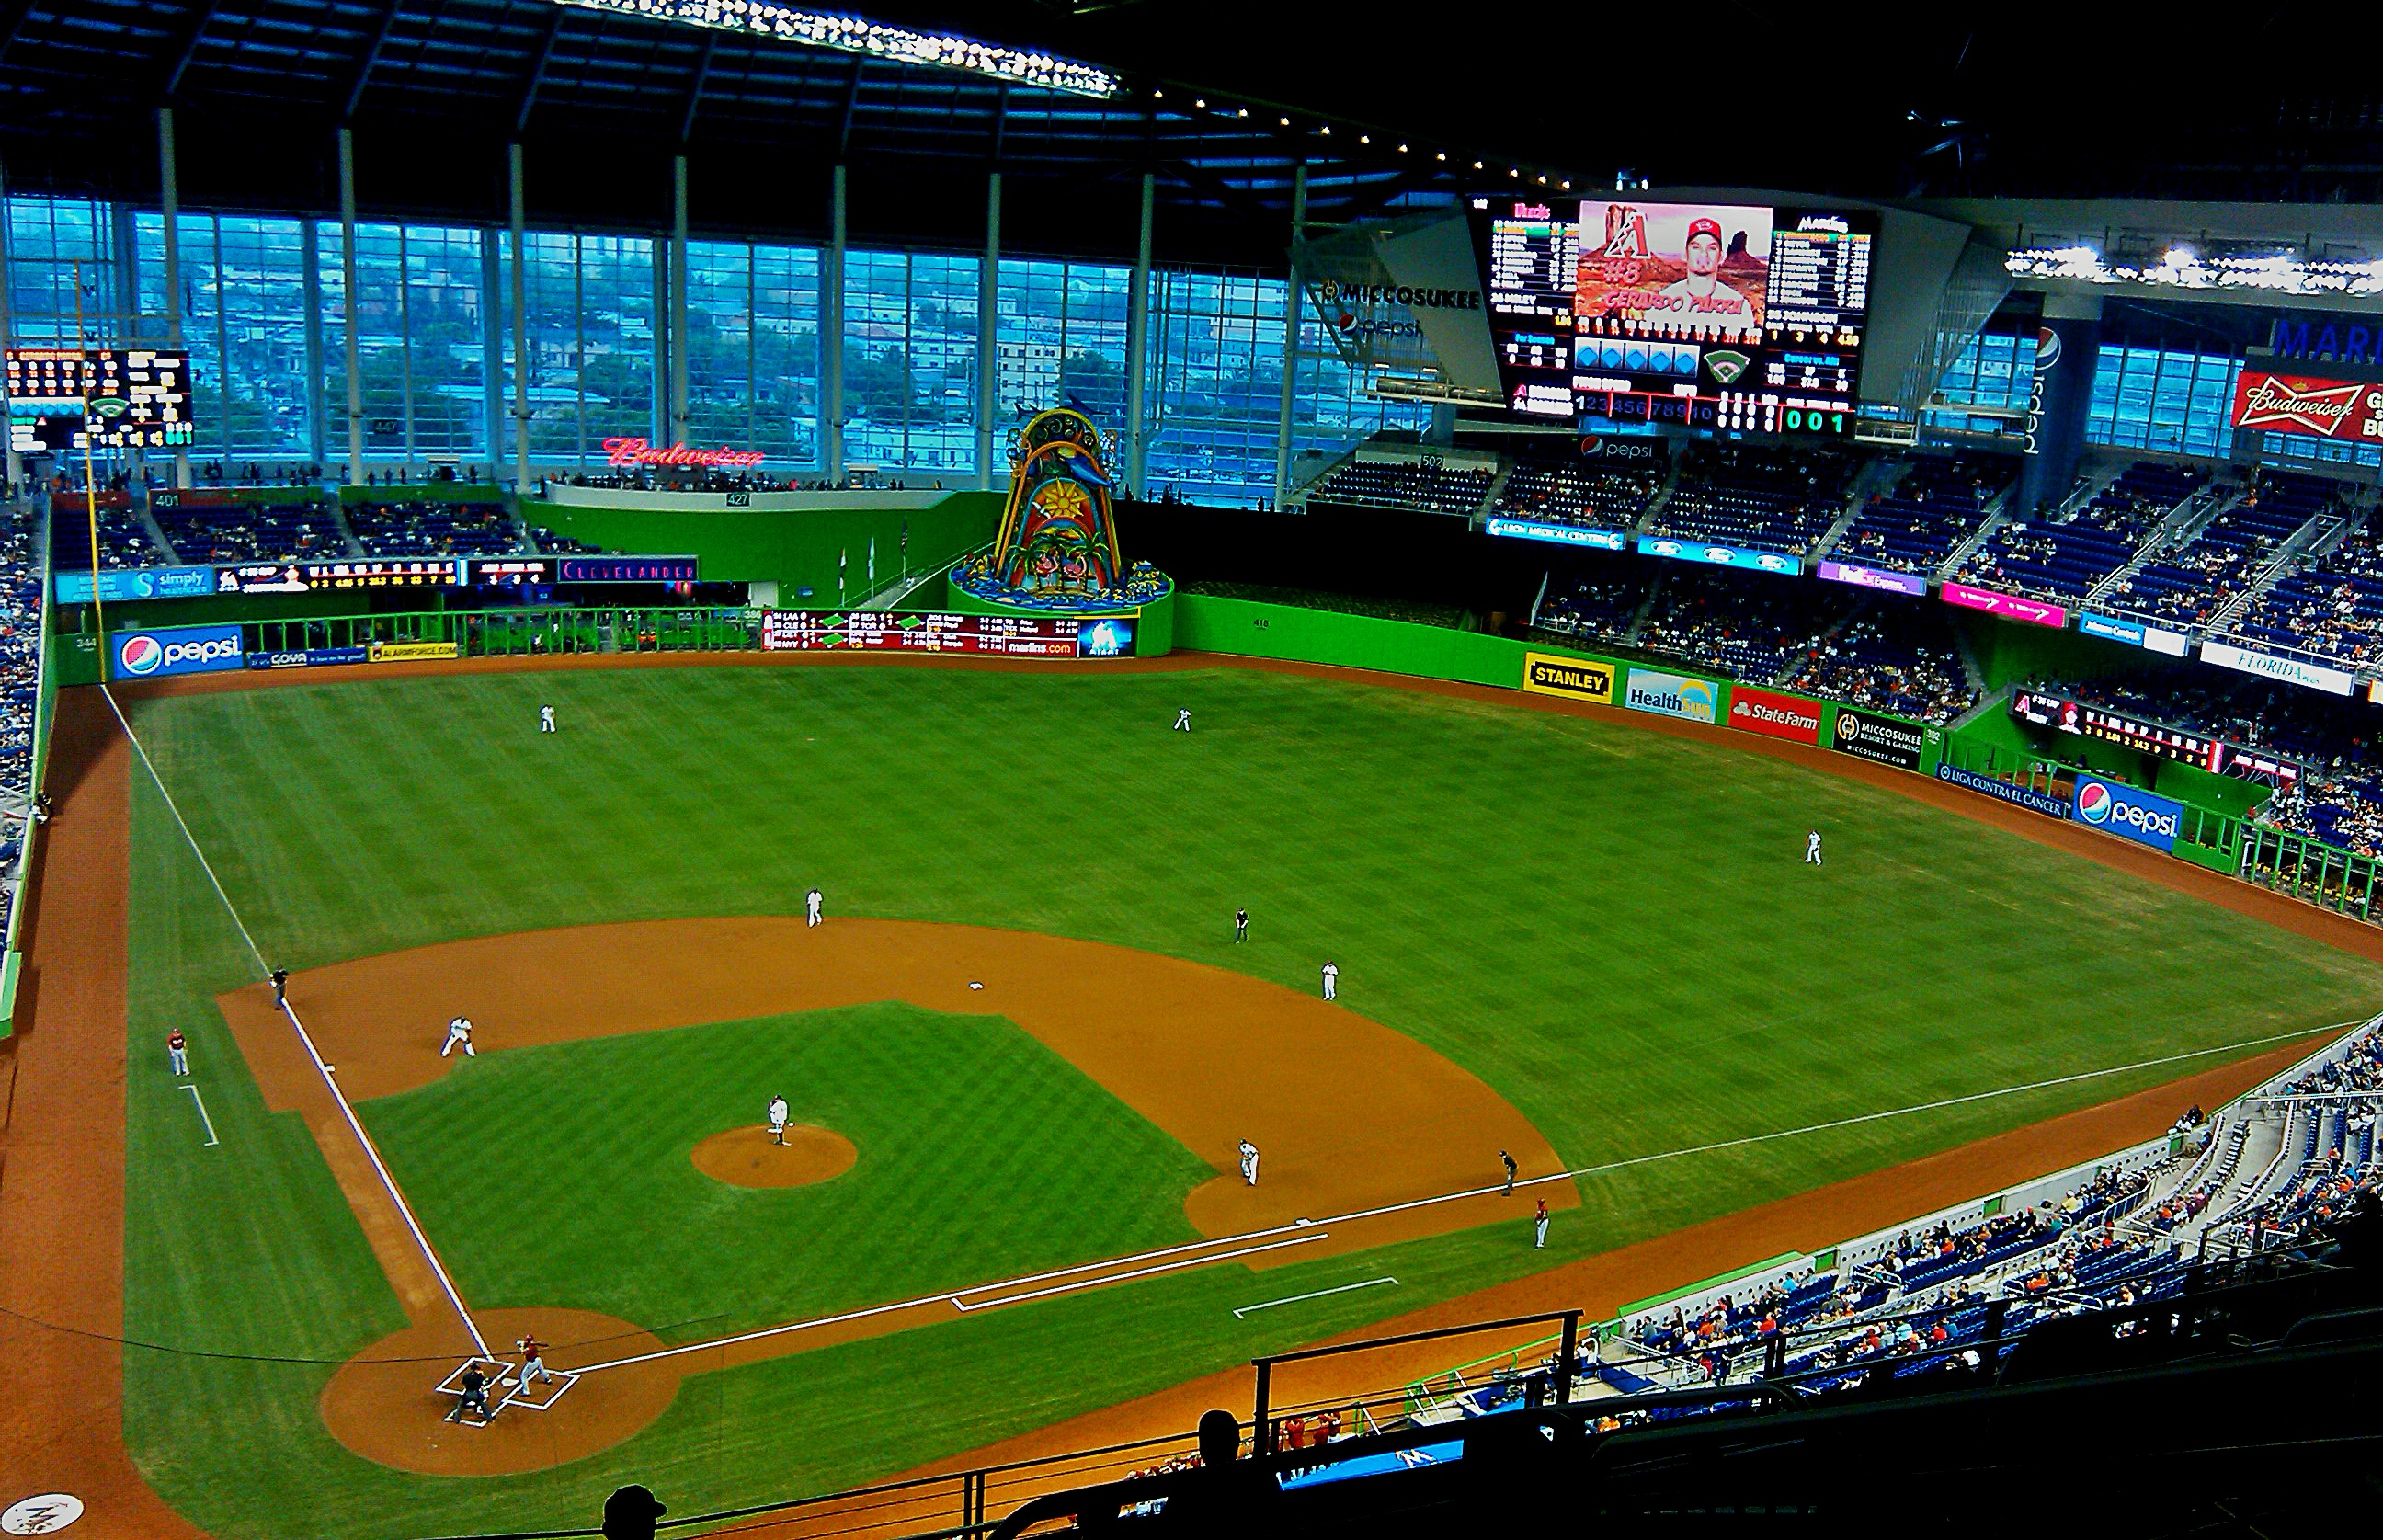 Night with the Marlins